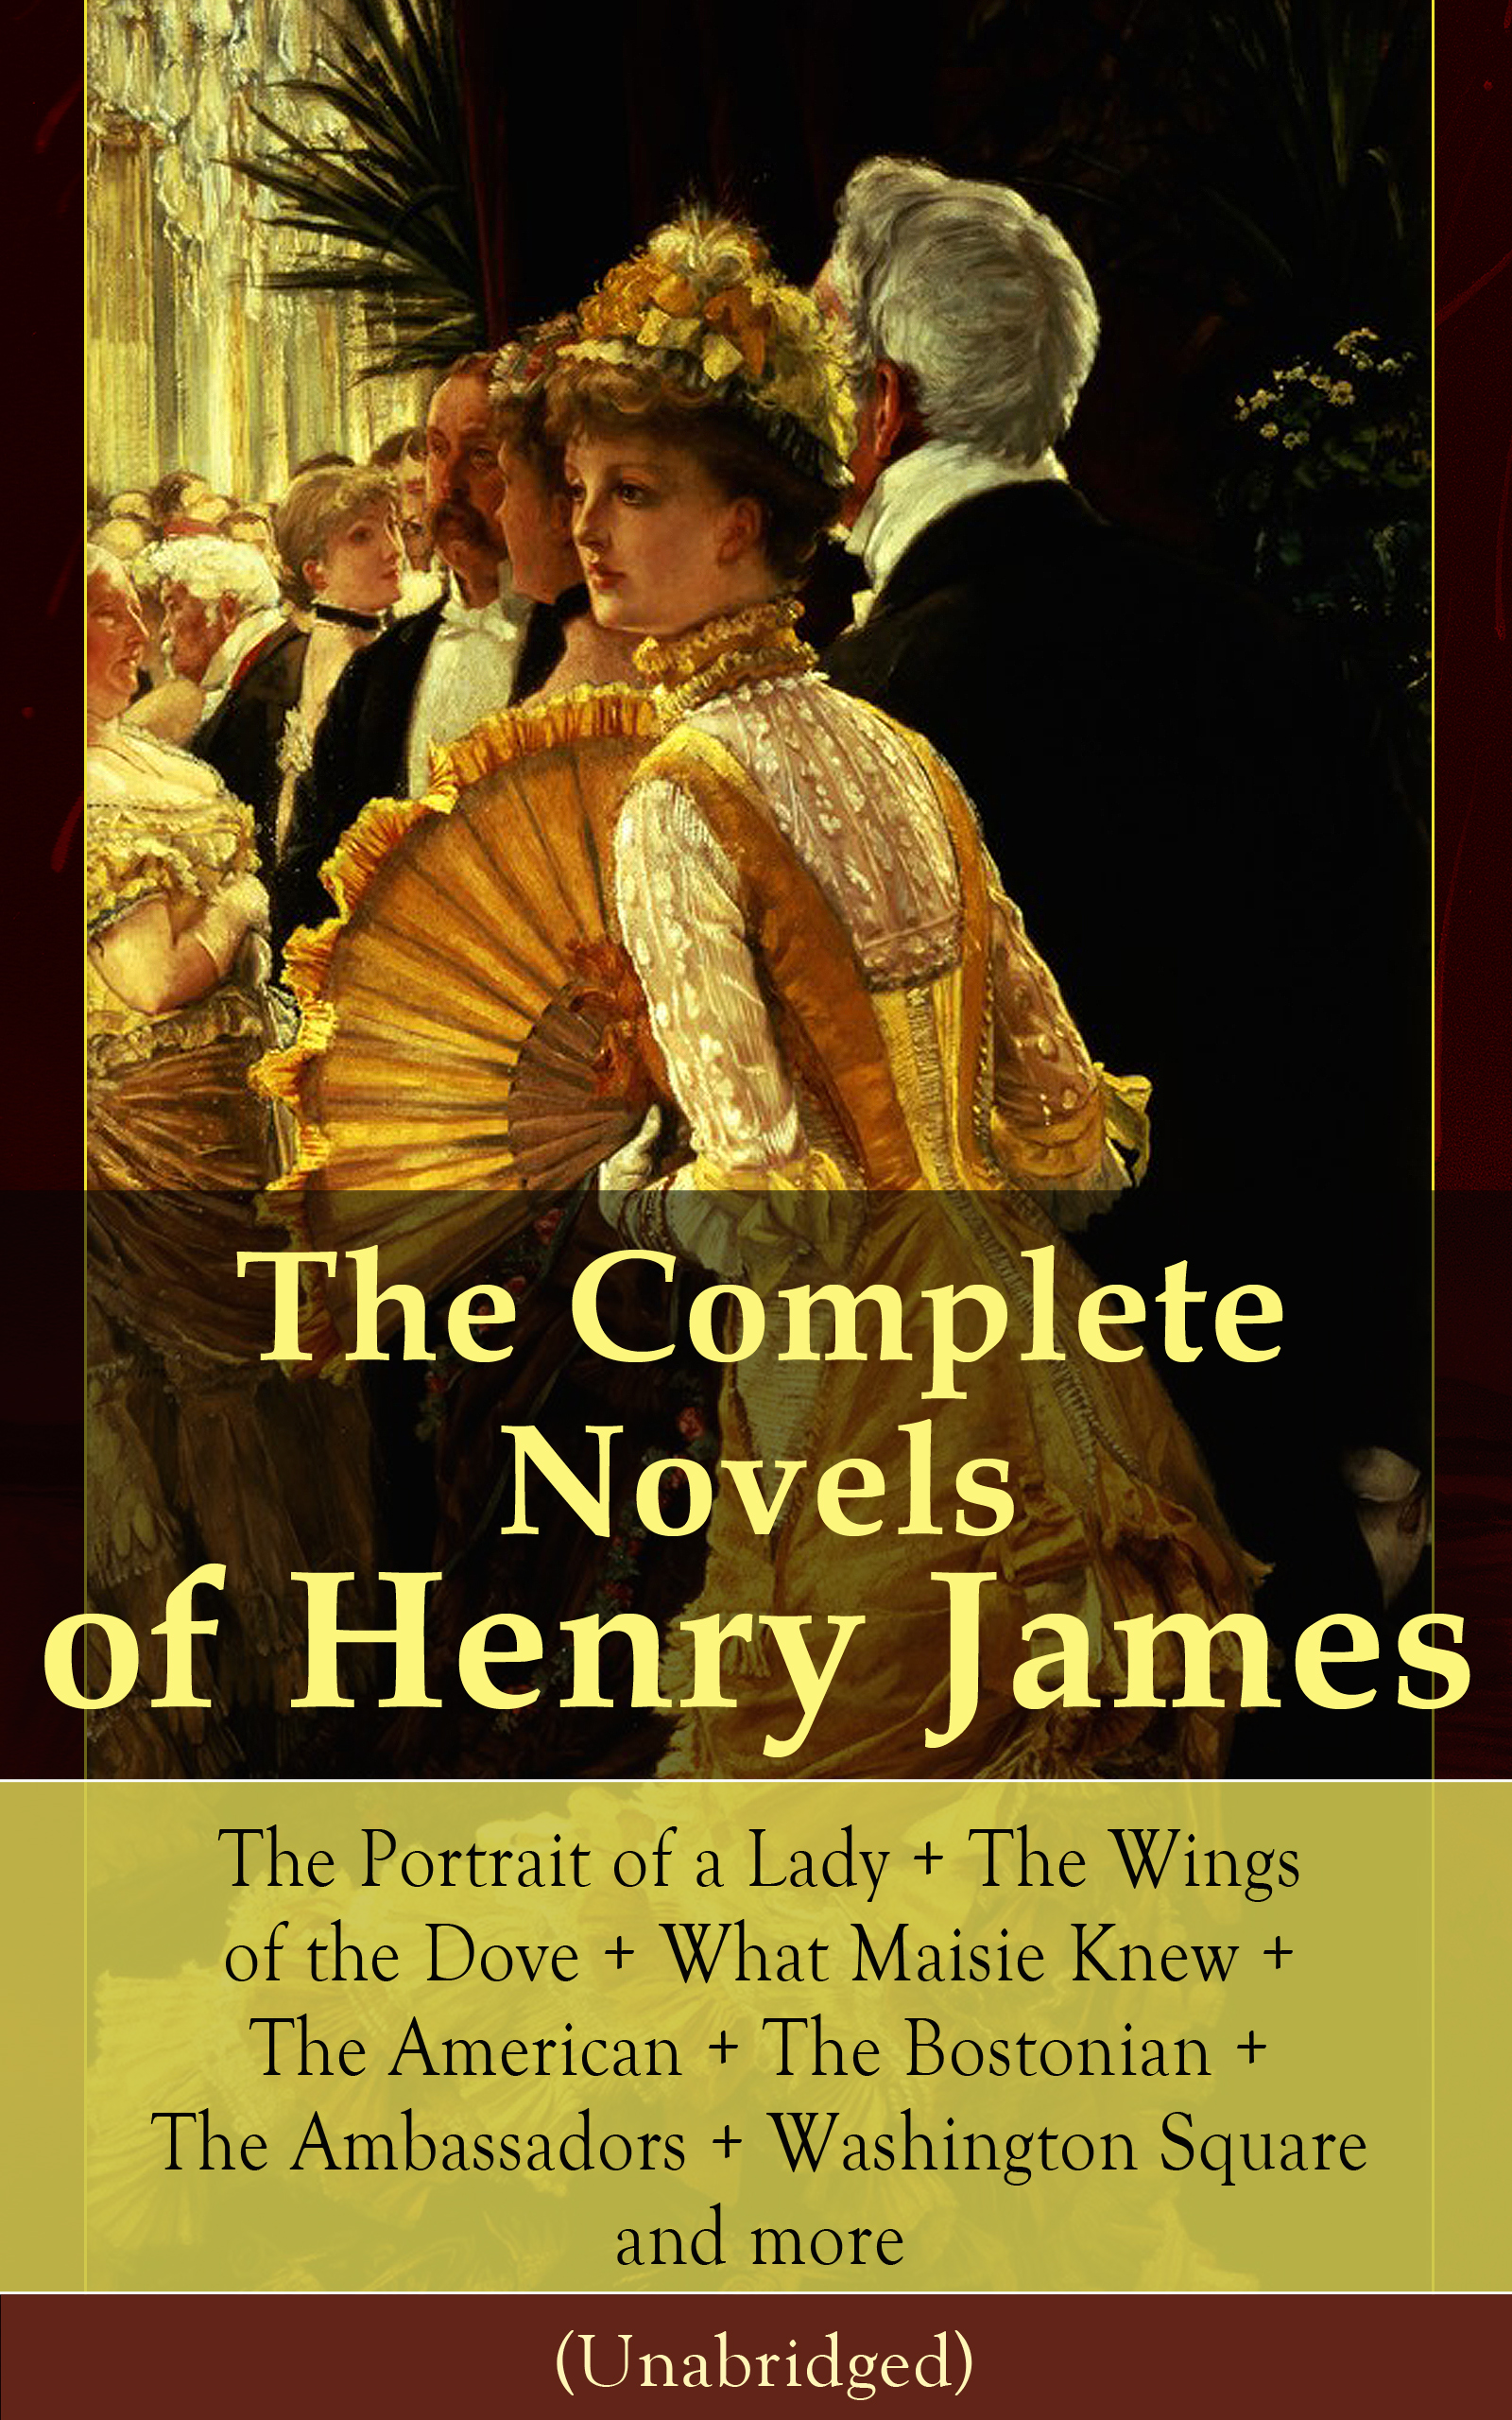 The Complete Novels of Henry James: The Portrait of a Lady + The Wings of the Dove + What Maisie Knew + The American + The Bostonian + The Ambassadors + Washington Square and more (Unabridged)